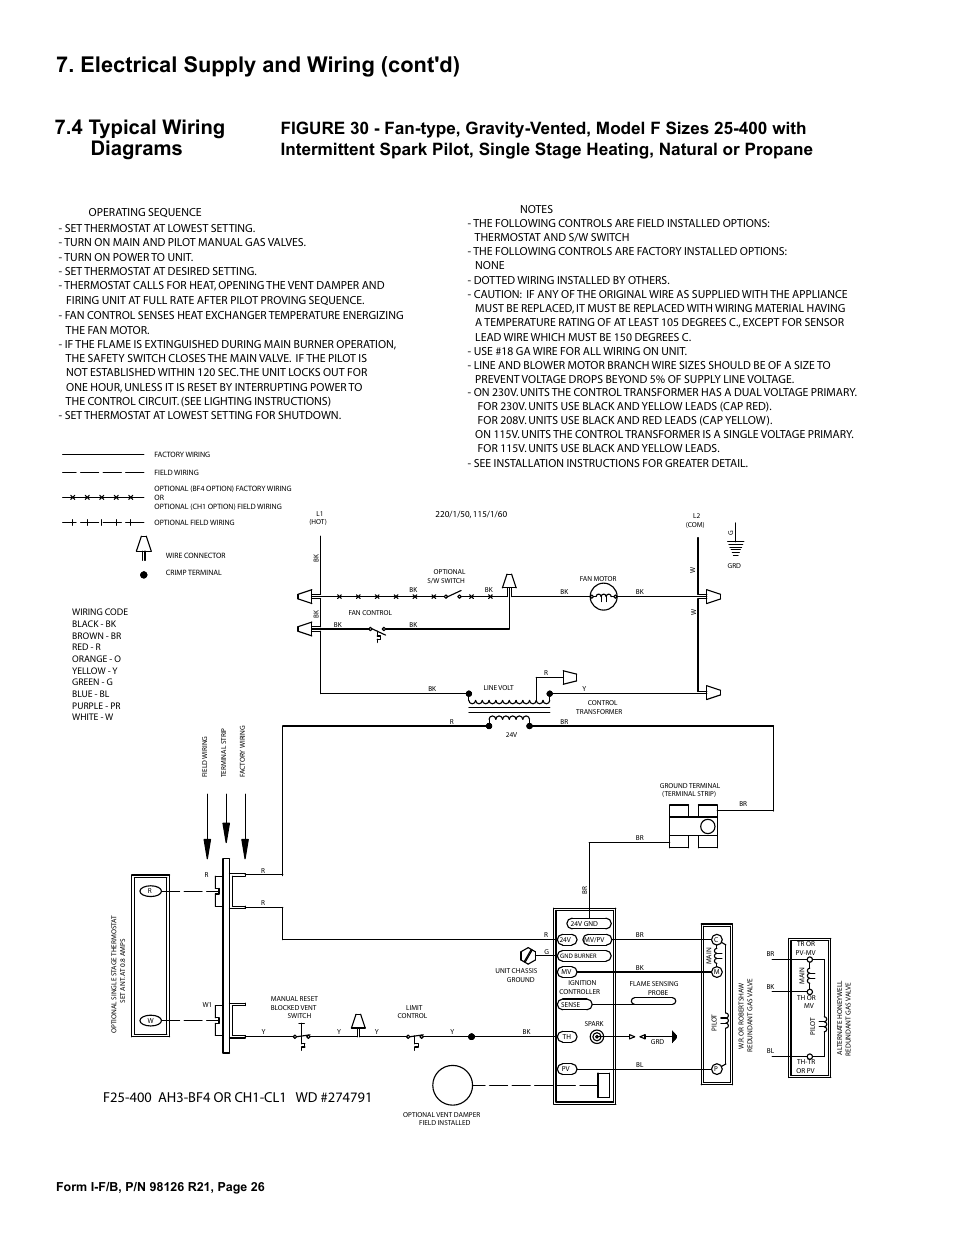 Fantech Wiring Diagrams 23 Diagram Images Shr 1 Series Hot Rails Reznor B Unit Installation Manual Page26 U2022